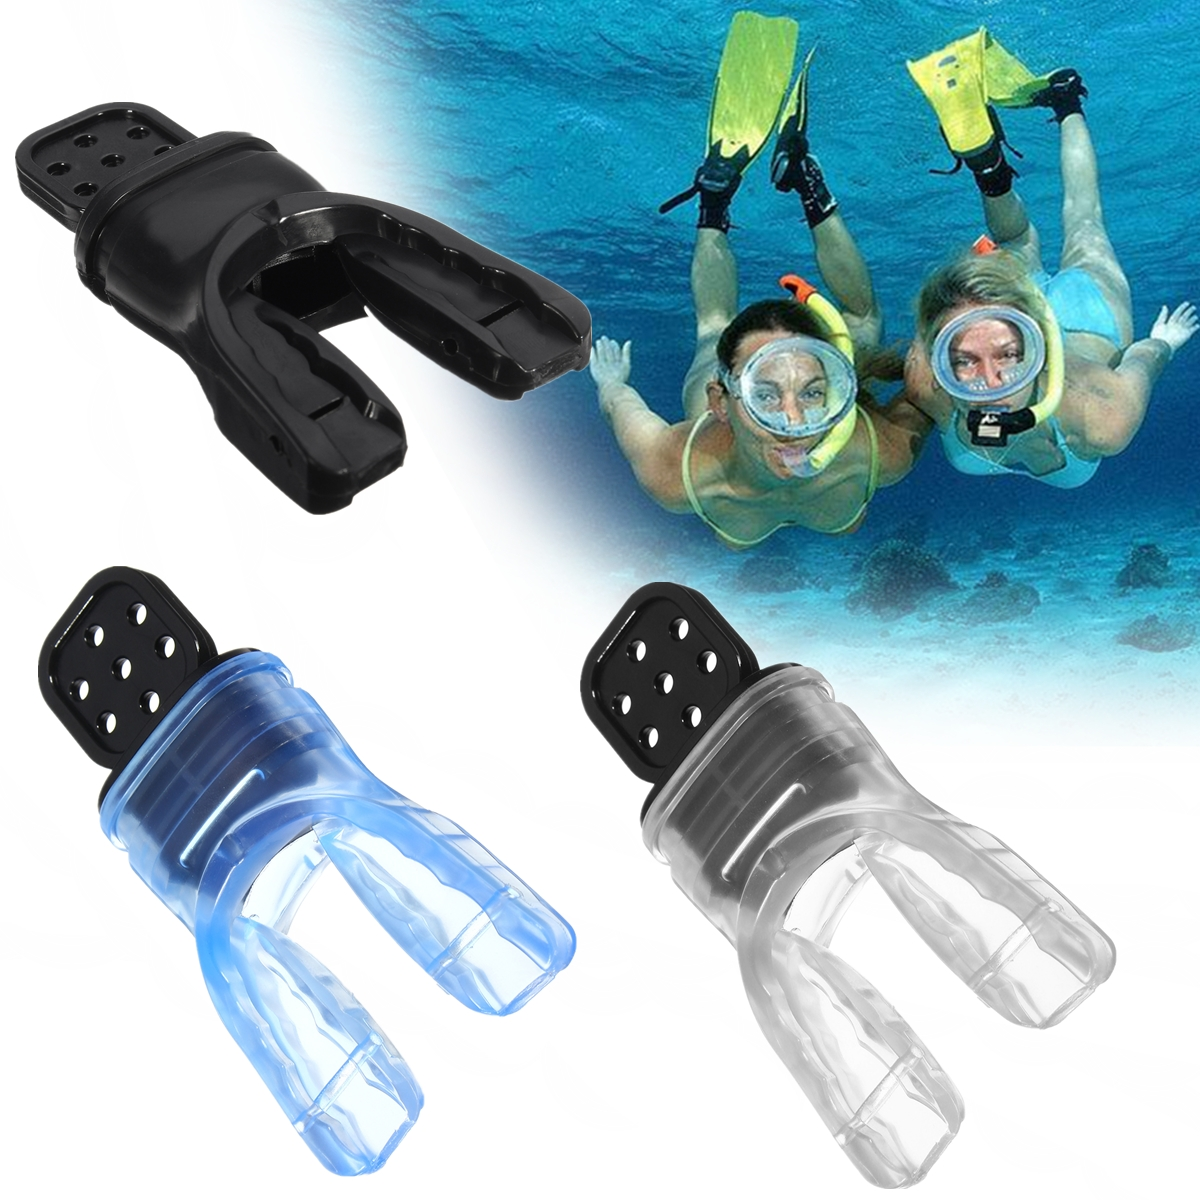 Silicone Scuba Diving Dive Snorkel Bite Standard Mouthpiece Octopus Regulator